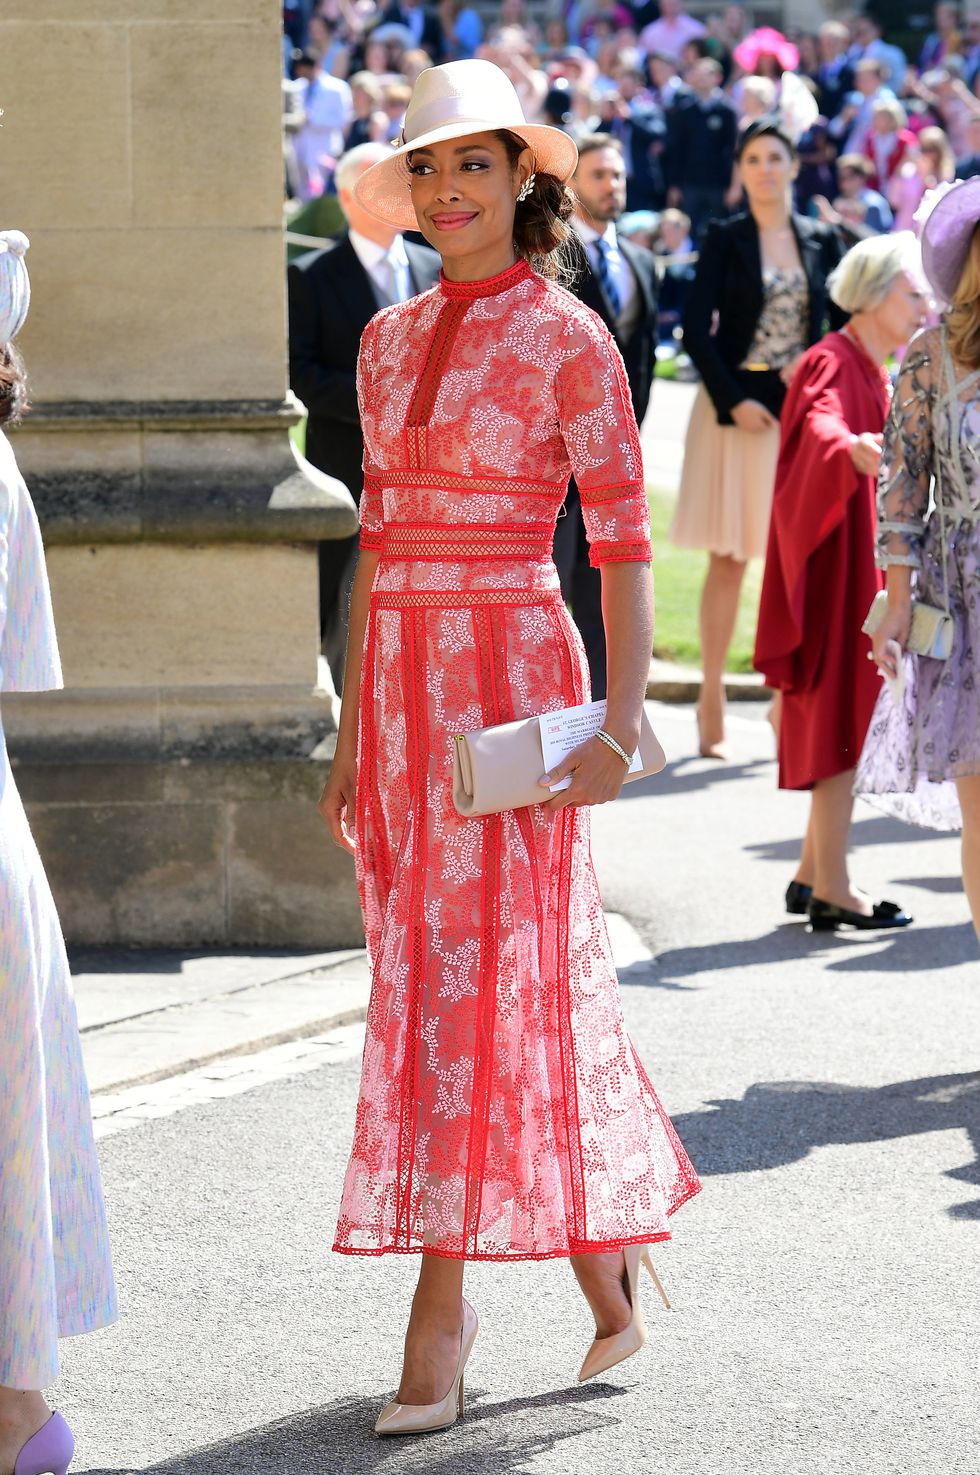 Best And Worse Dressed Wedding Guest's From Prince Harry and Meghan Markle's Royal Wedding